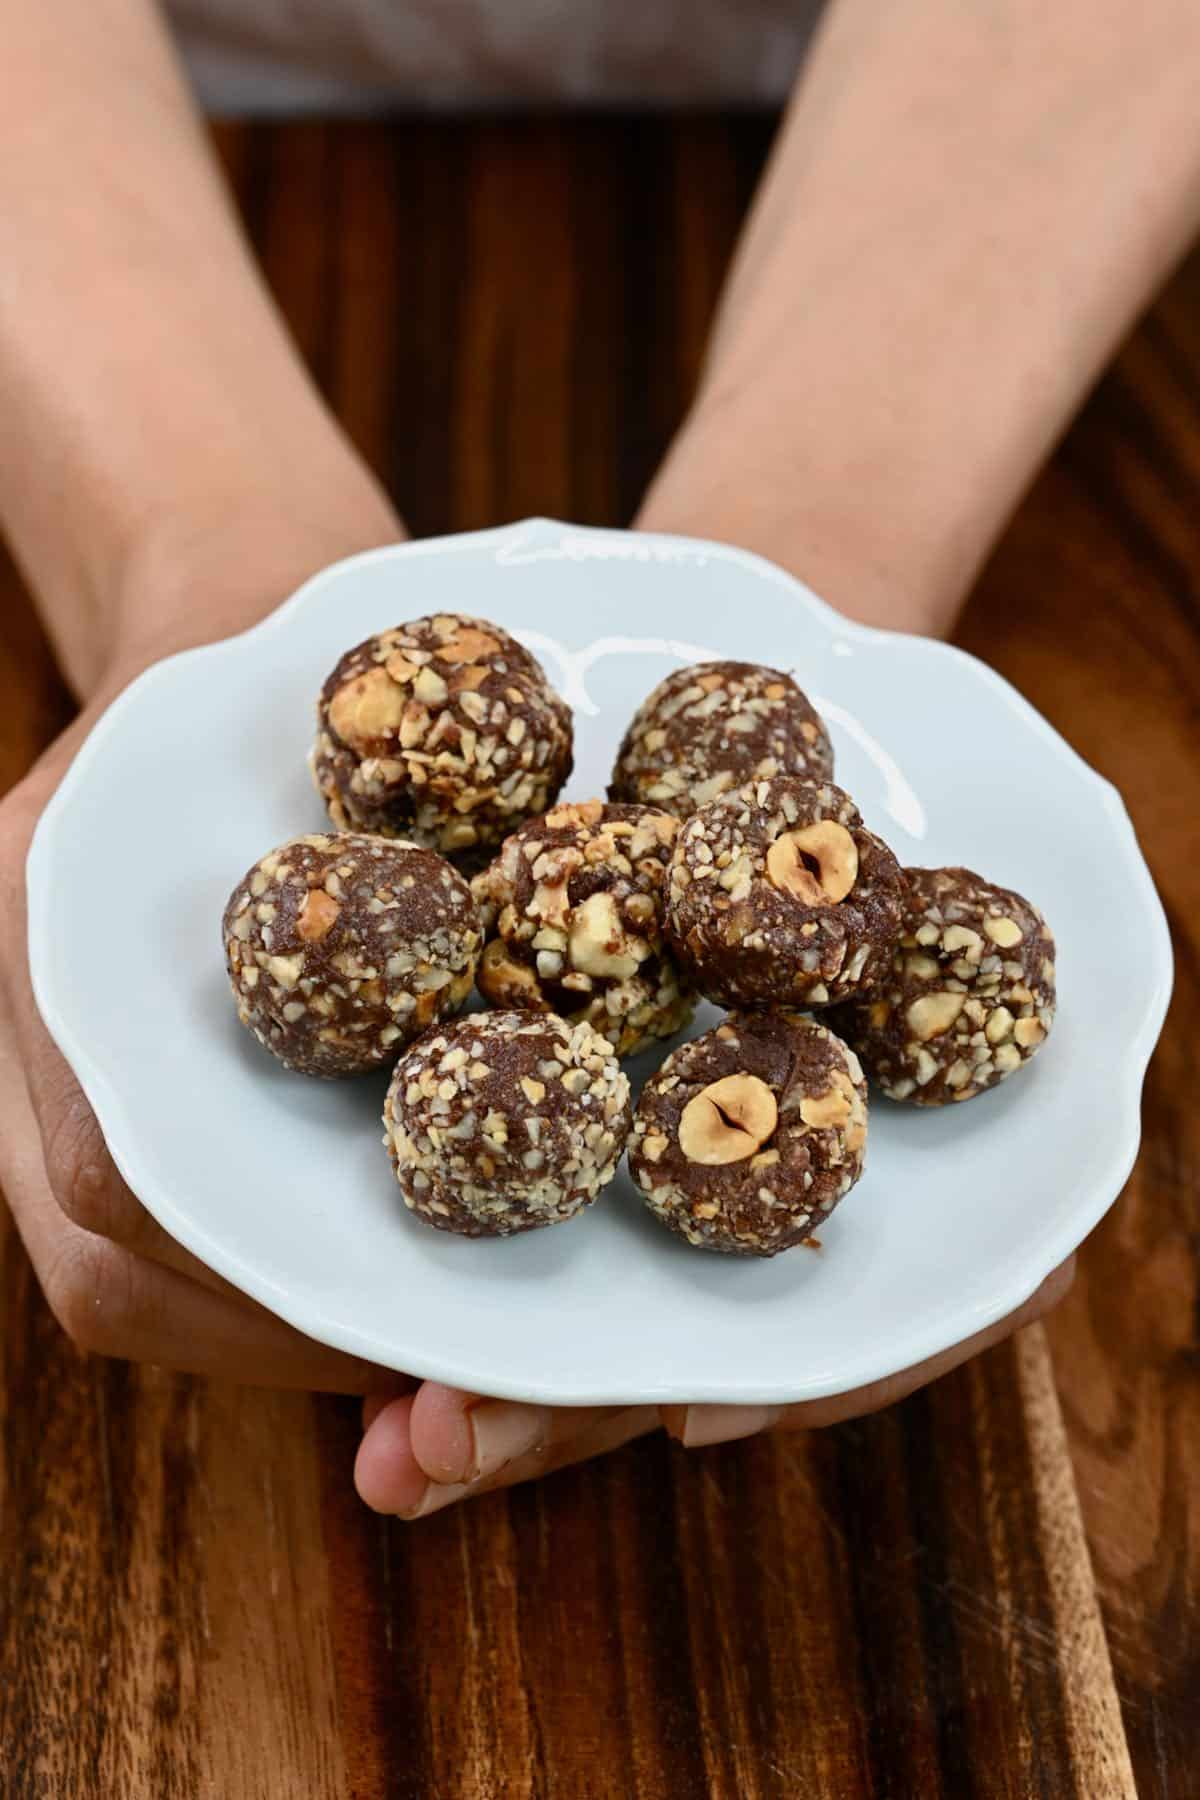 Holding a plate with vegan Ferrero Rocher